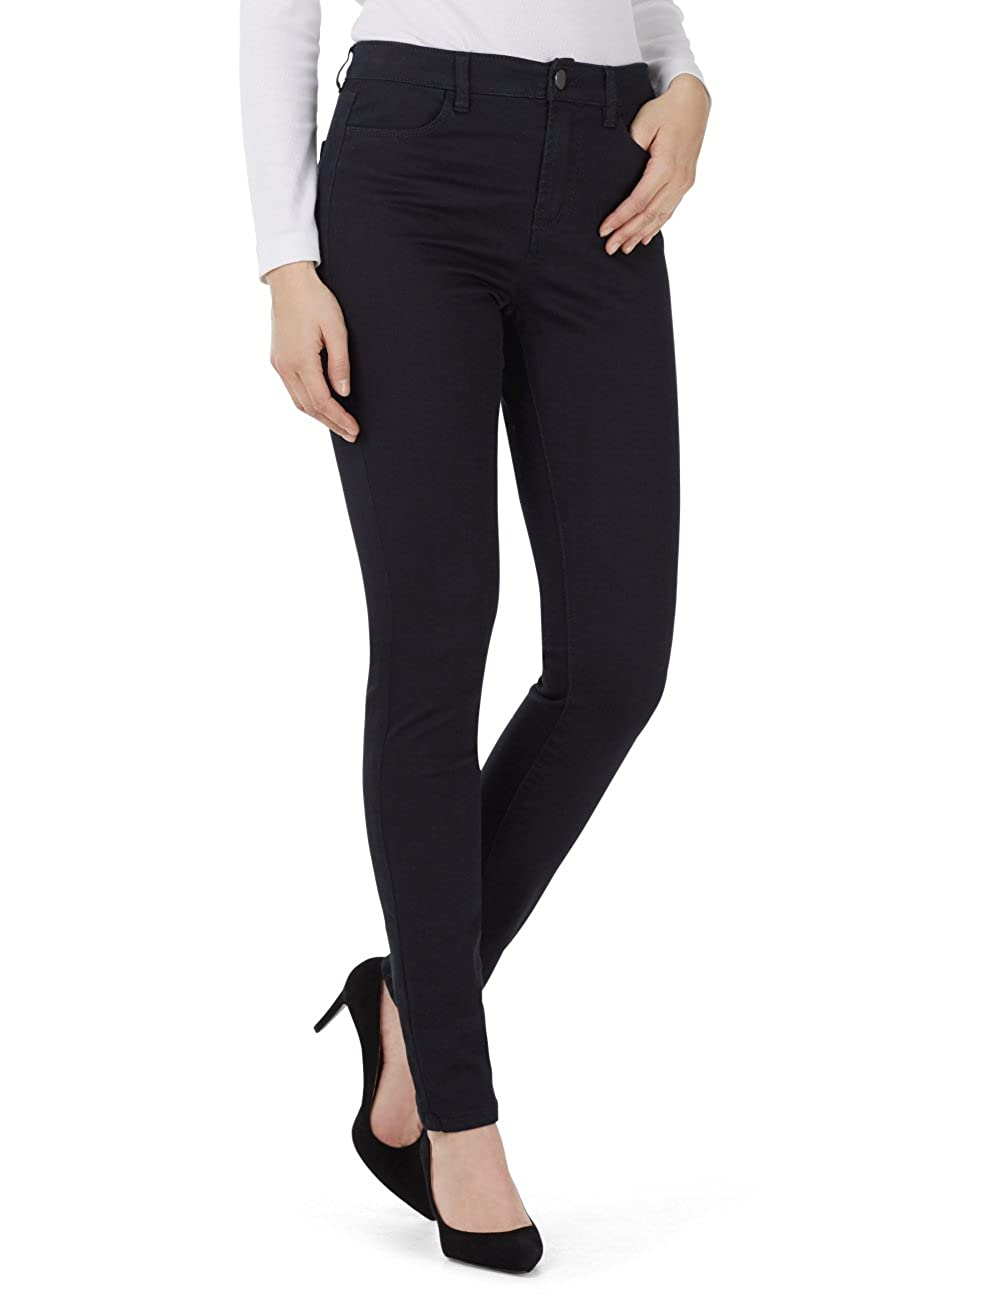 TALLA 36. Marc Cain Collections Vaqueros Slim para Mujer